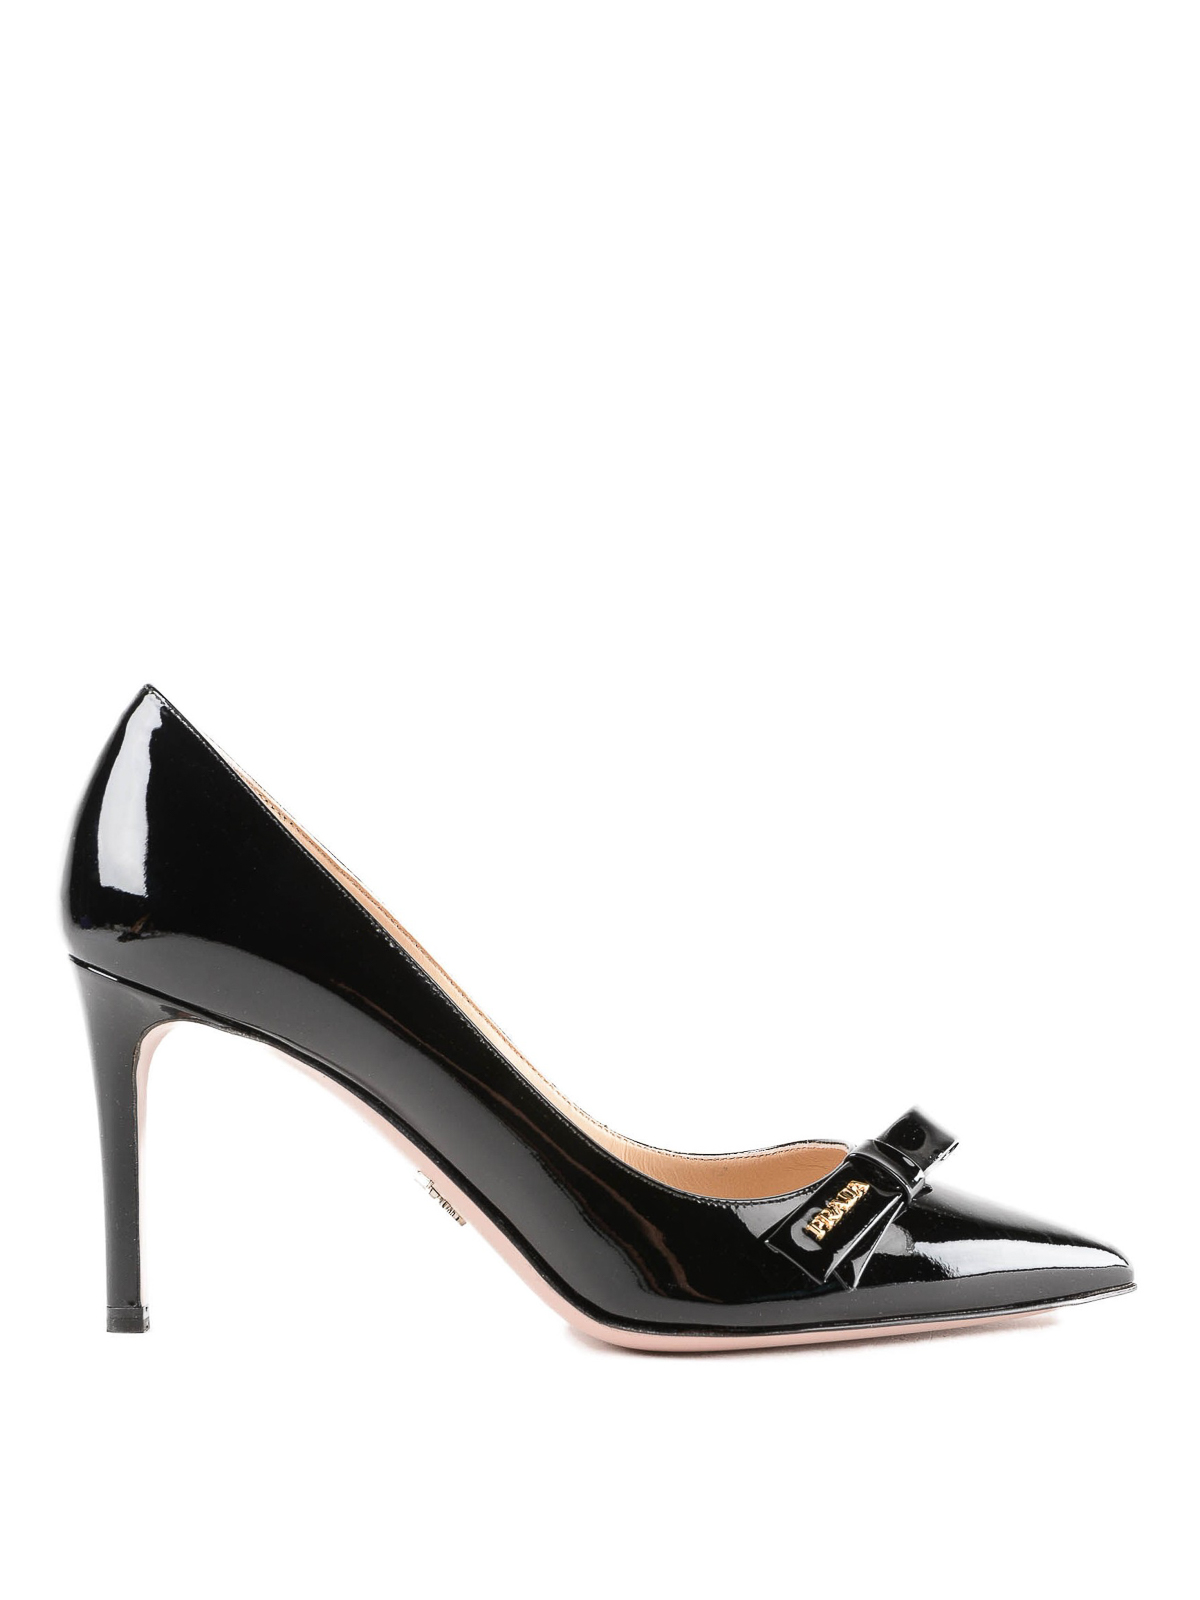 a6105d8c3e0 Prada - Black patent leather pointy pumps with bow - court shoes ...